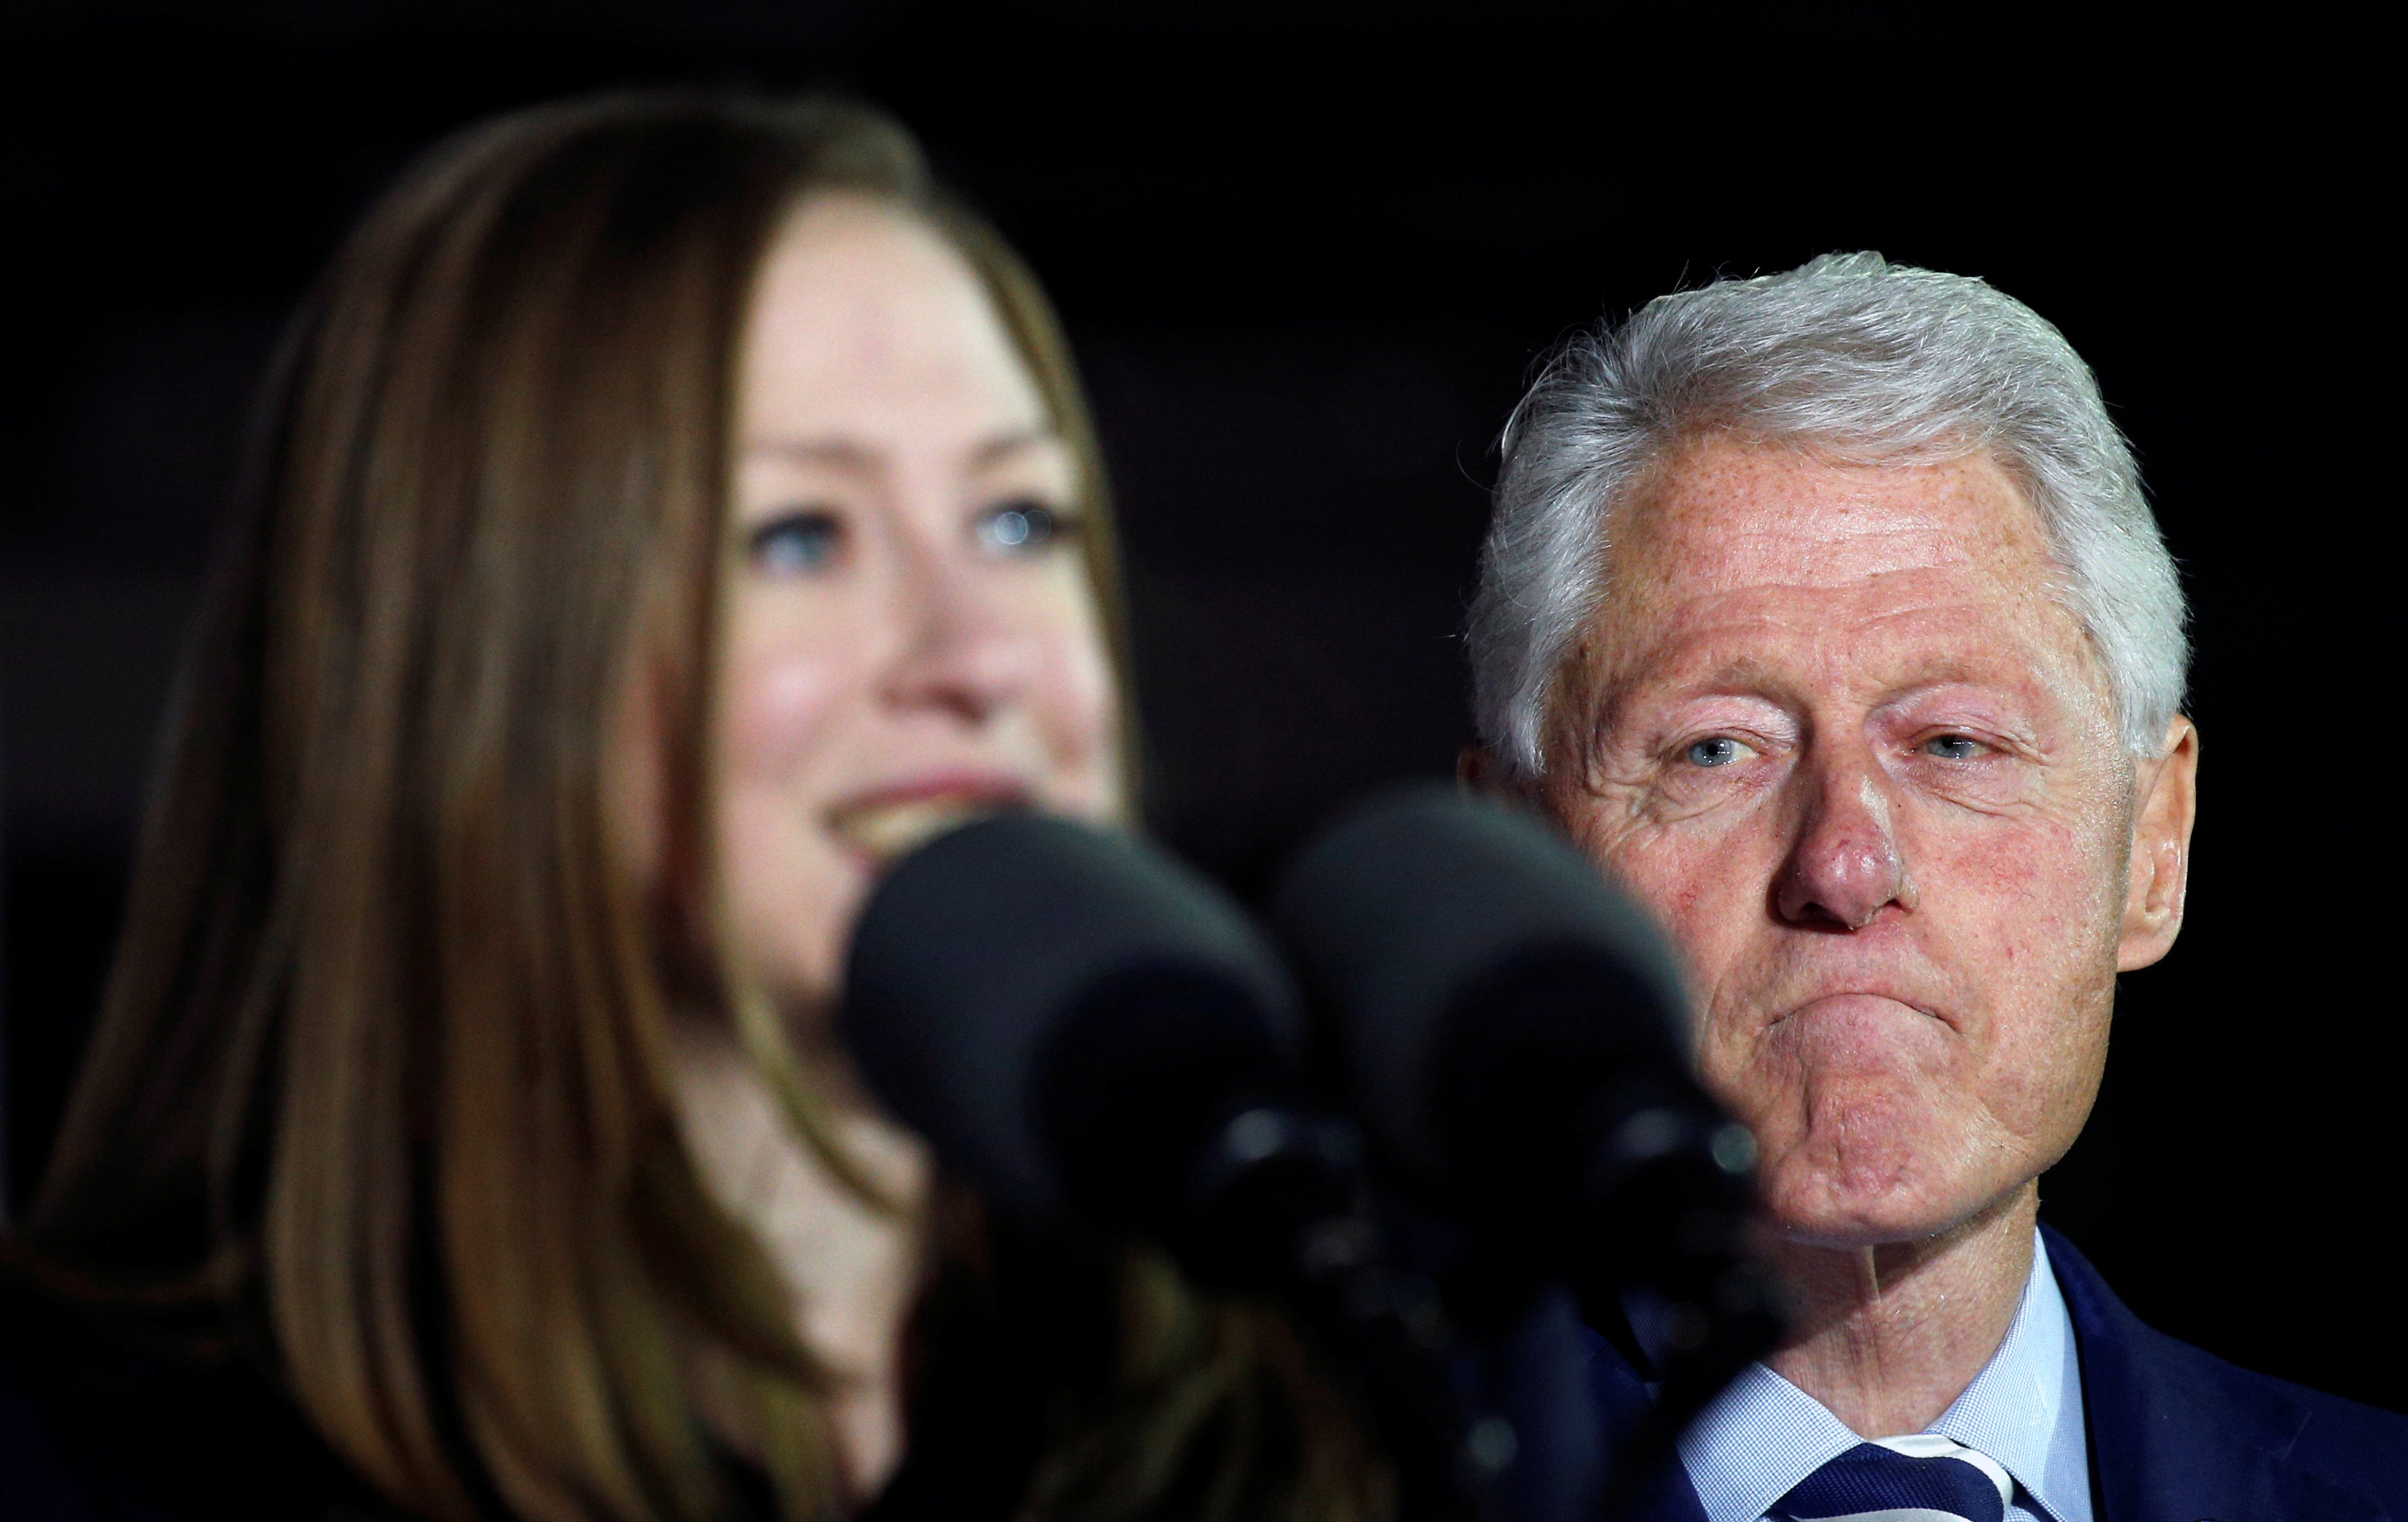 Former President Bill Clinton listens as his daughter Chelsea speaks during a campaign rally for Democratic presidential candidate Hillary Clinton at Independence Hall in Philadelphia, Pennsylvania November 7, 2016. REUTERS/Kevin Lamarque